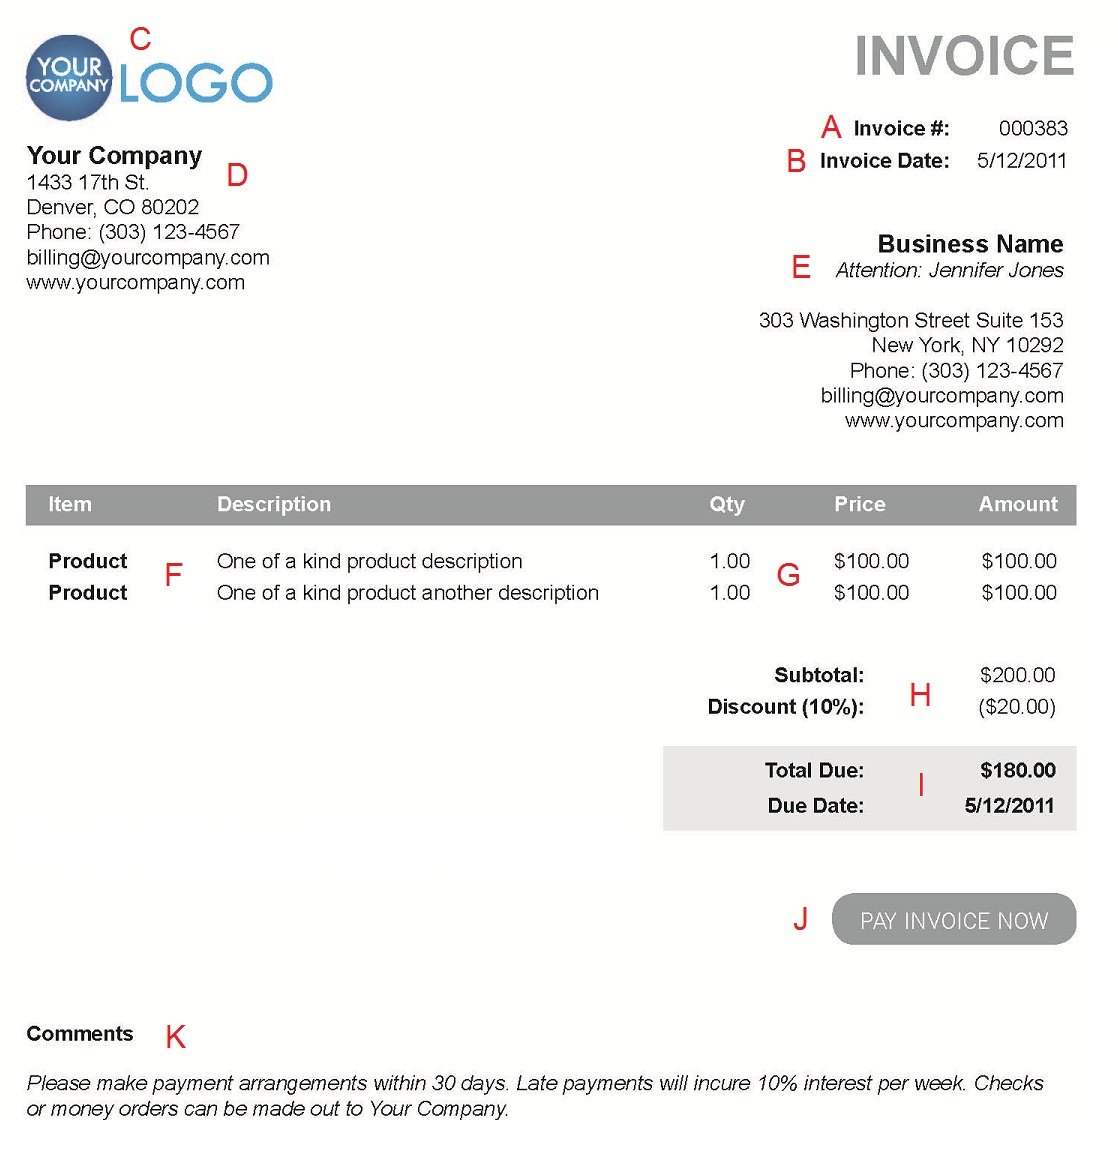 Maidofhonortoastus  Prepossessing The  Different Sections Of An Electronic Payment Invoice With Entrancing A  With Agreeable Google Templates Invoice Also Zoho Invoice Review In Addition Professional Services Invoice Template And Consultant Invoice Template Word As Well As What Is Invoice Financing Additionally How To Find Out Dealer Invoice Price From Paysimplecom With Maidofhonortoastus  Entrancing The  Different Sections Of An Electronic Payment Invoice With Agreeable A  And Prepossessing Google Templates Invoice Also Zoho Invoice Review In Addition Professional Services Invoice Template From Paysimplecom